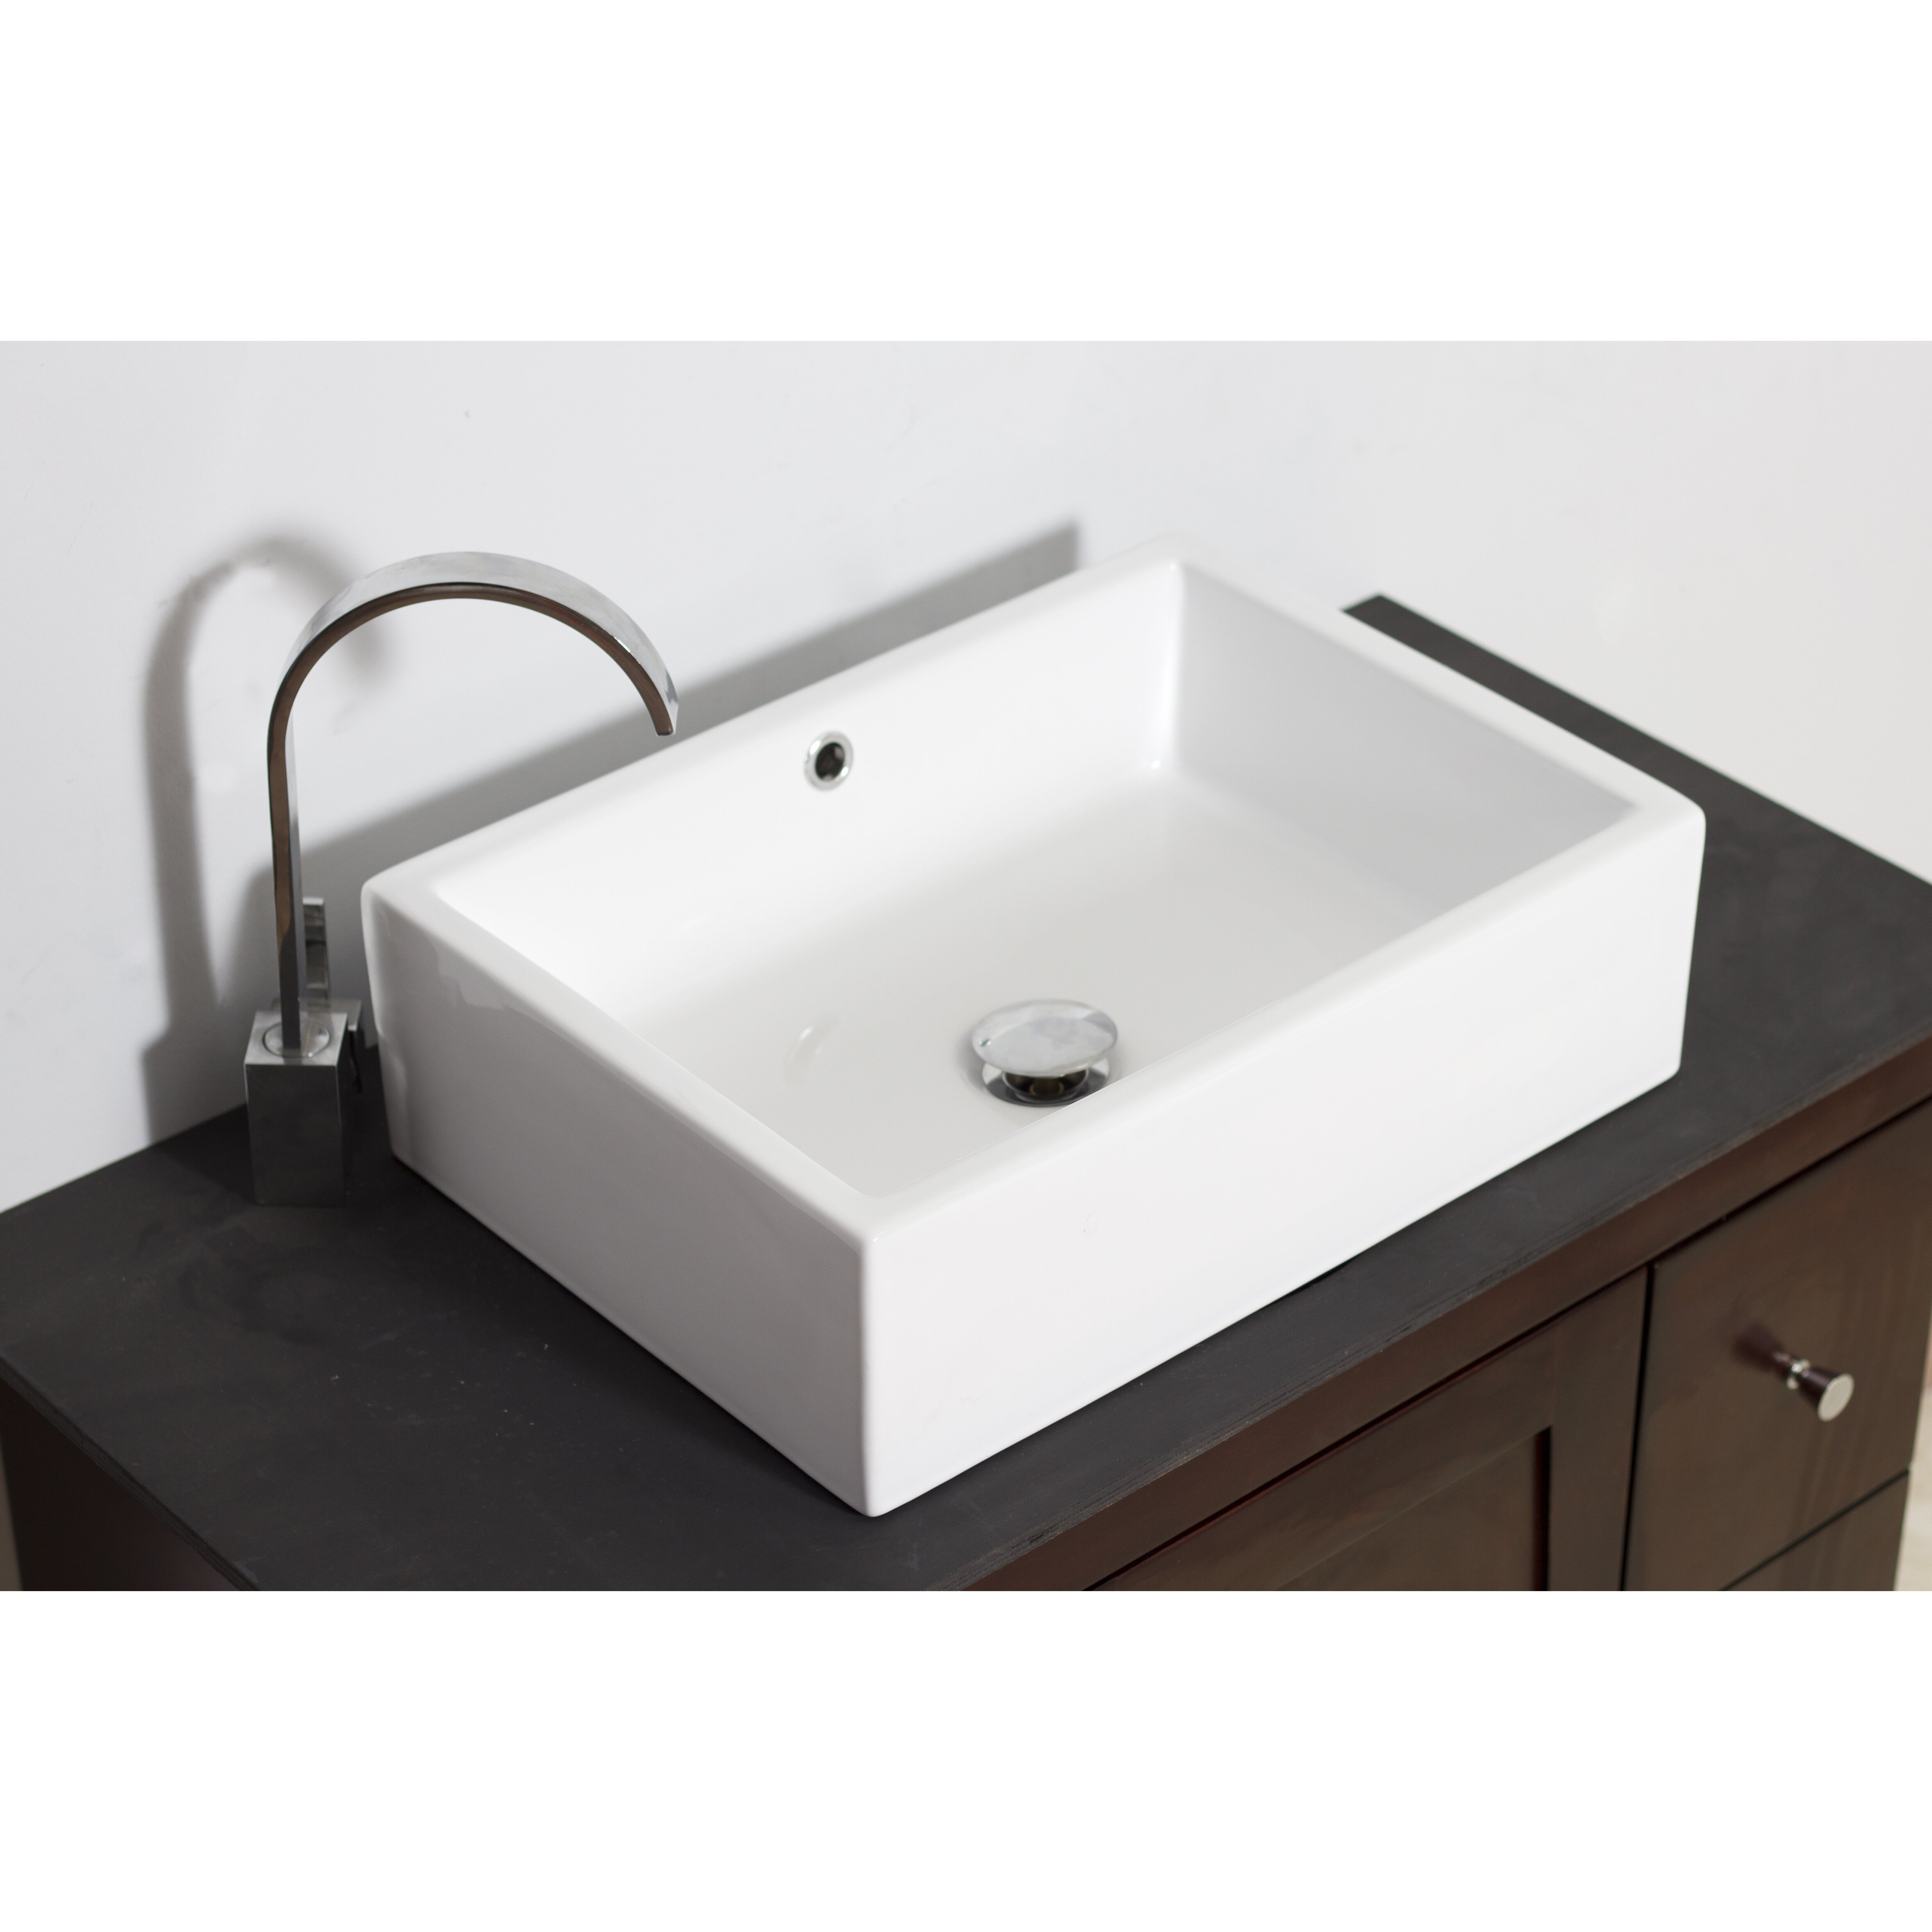 Http Www Wayfair Com Above Counter Rectangle Vessel Bathroom Sink Ai 1299 Amim2141 Html